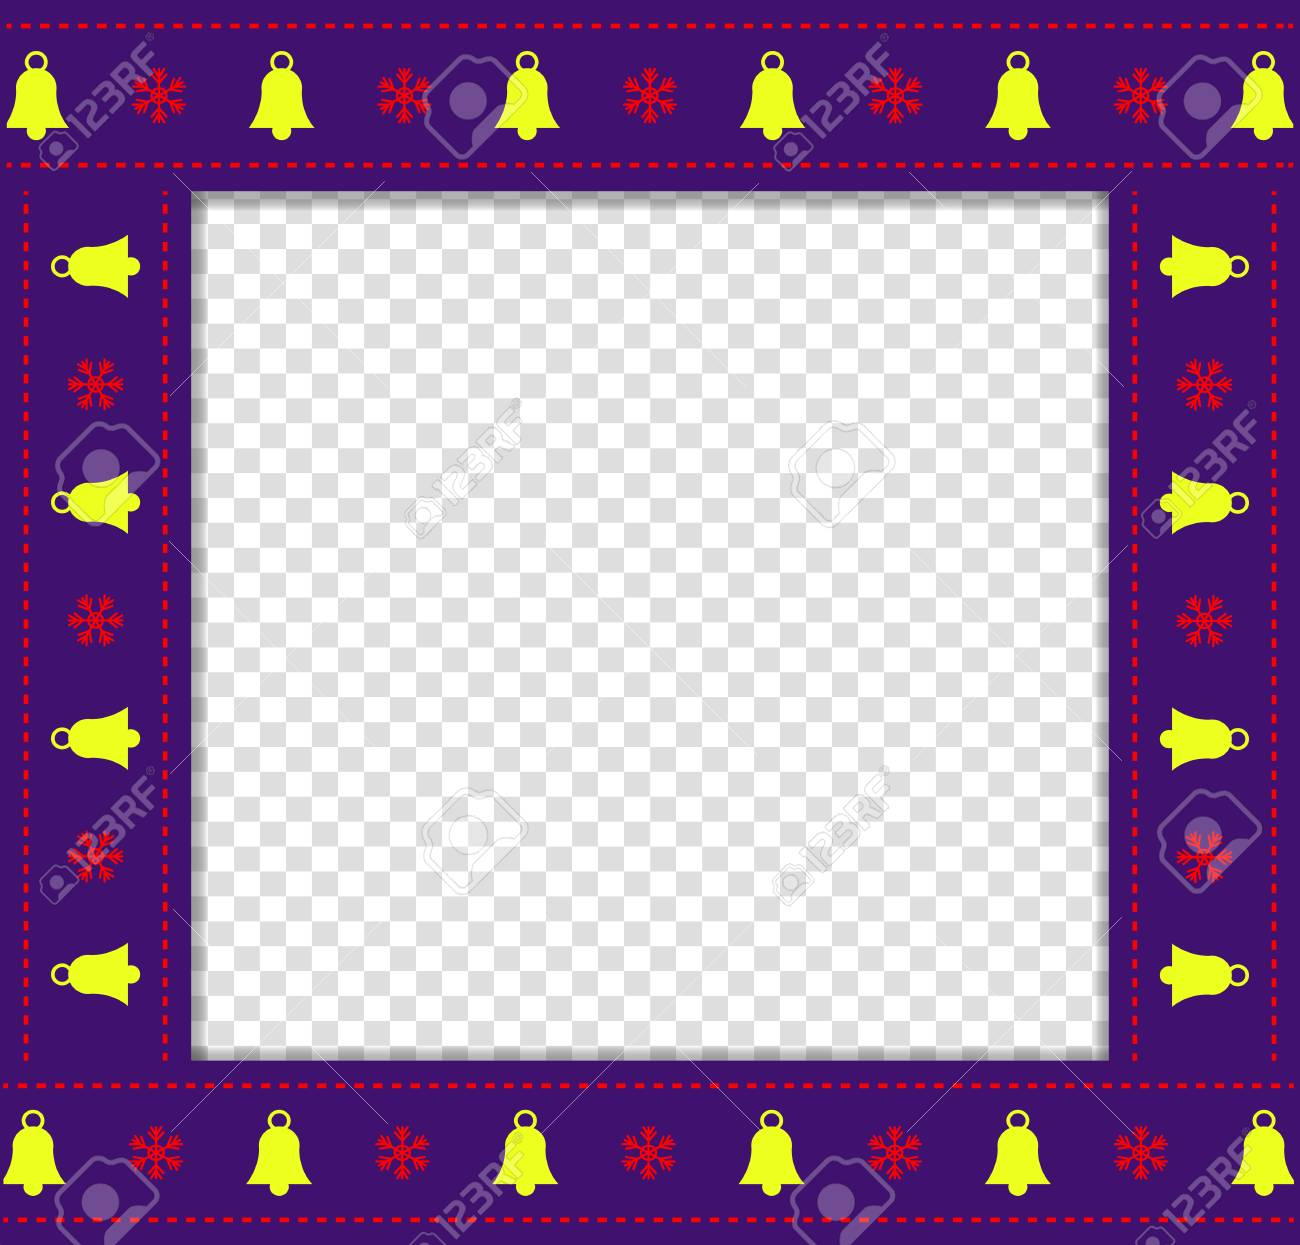 cute christmas or new year square border photo frame with bells and snowflakes pattern isolated